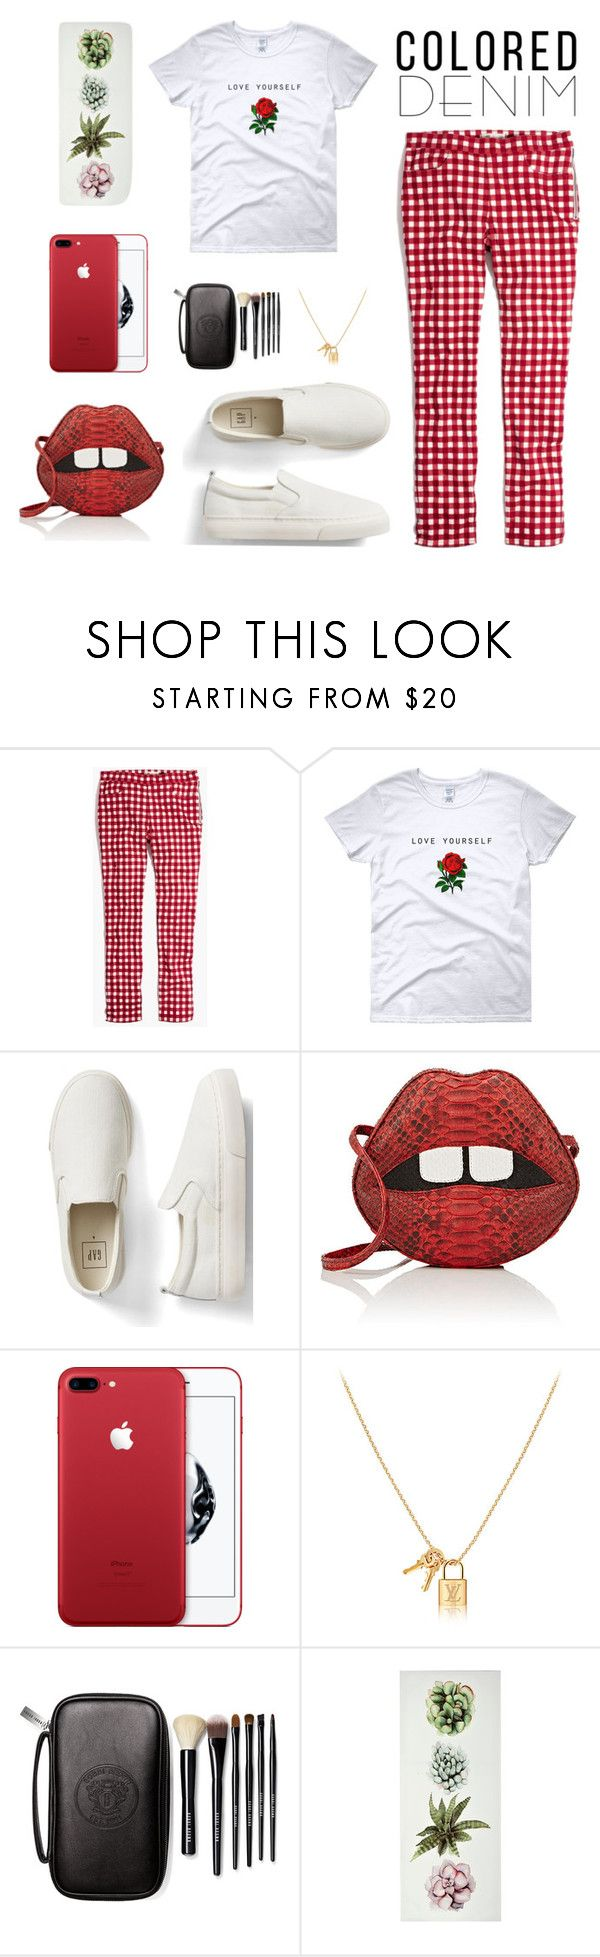 """white and red"" by lanagur on Polyvore featuring мода, Madewell, Gap, Gelareh Mizrahi и Bobbi Brown Cosmetics"